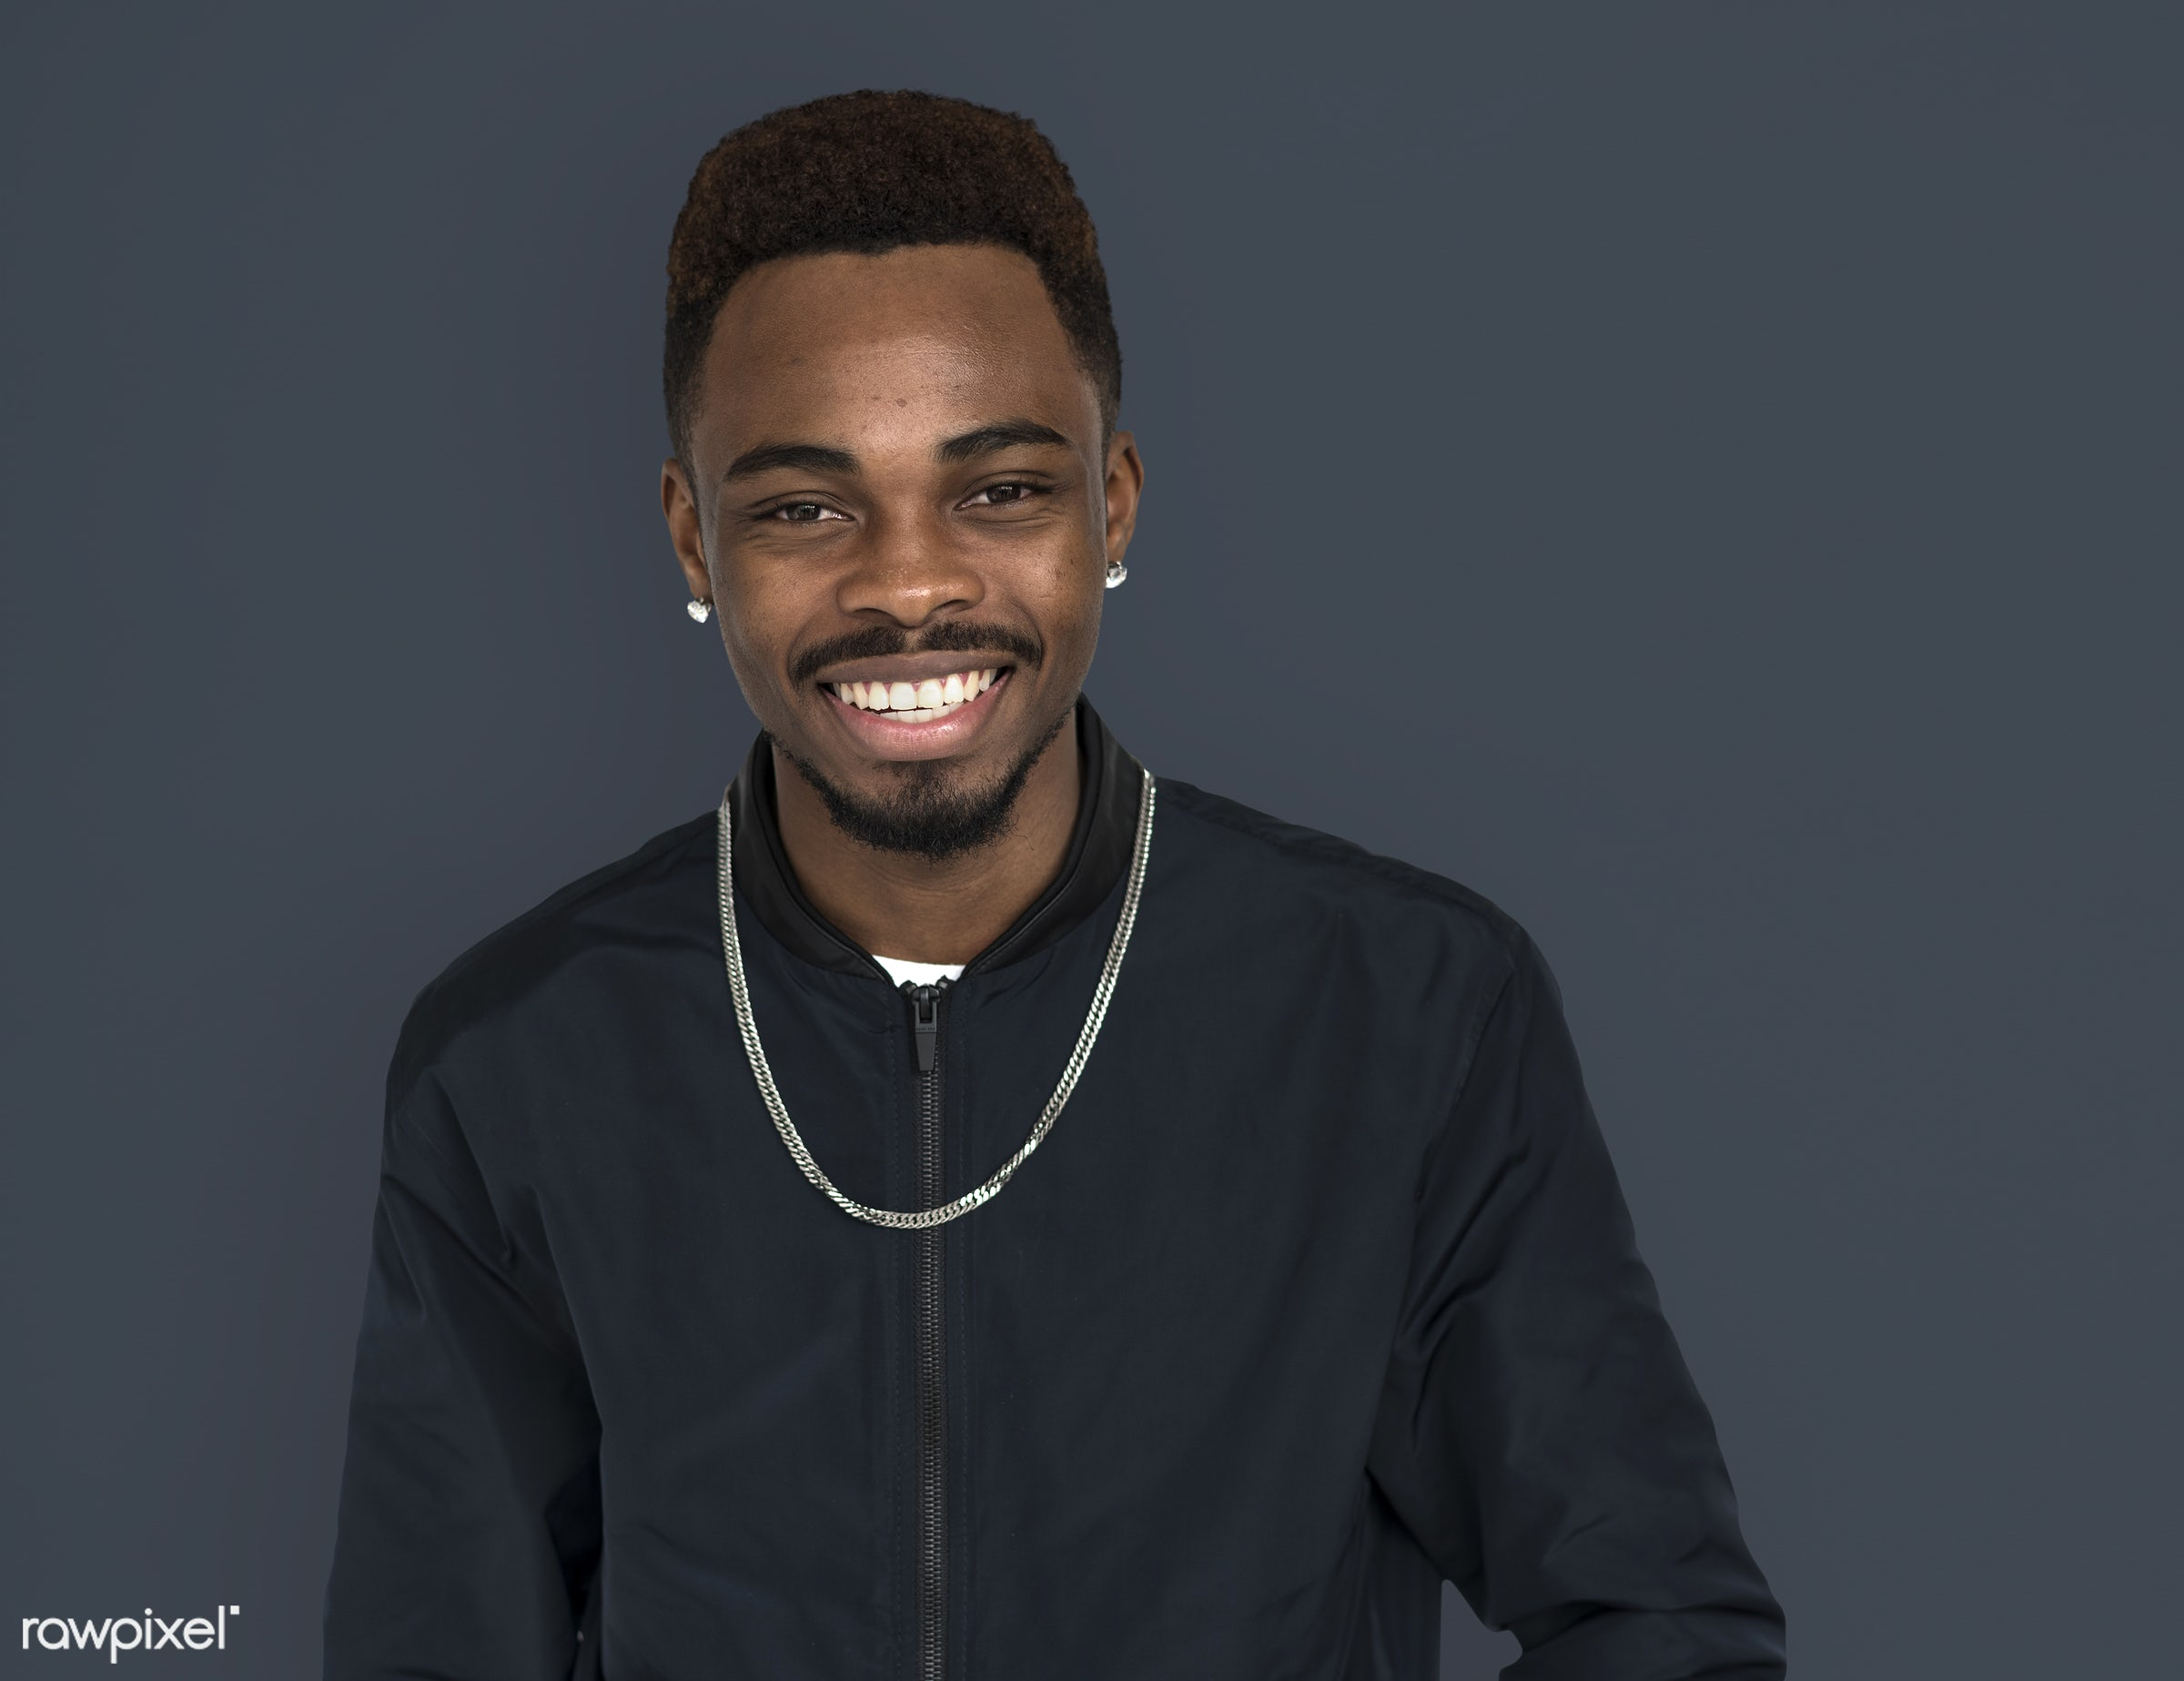 studio, model, person, african, people, race, style, solo, lifestyle, casual, smiling, man, isolated, guy, male, gesture,...